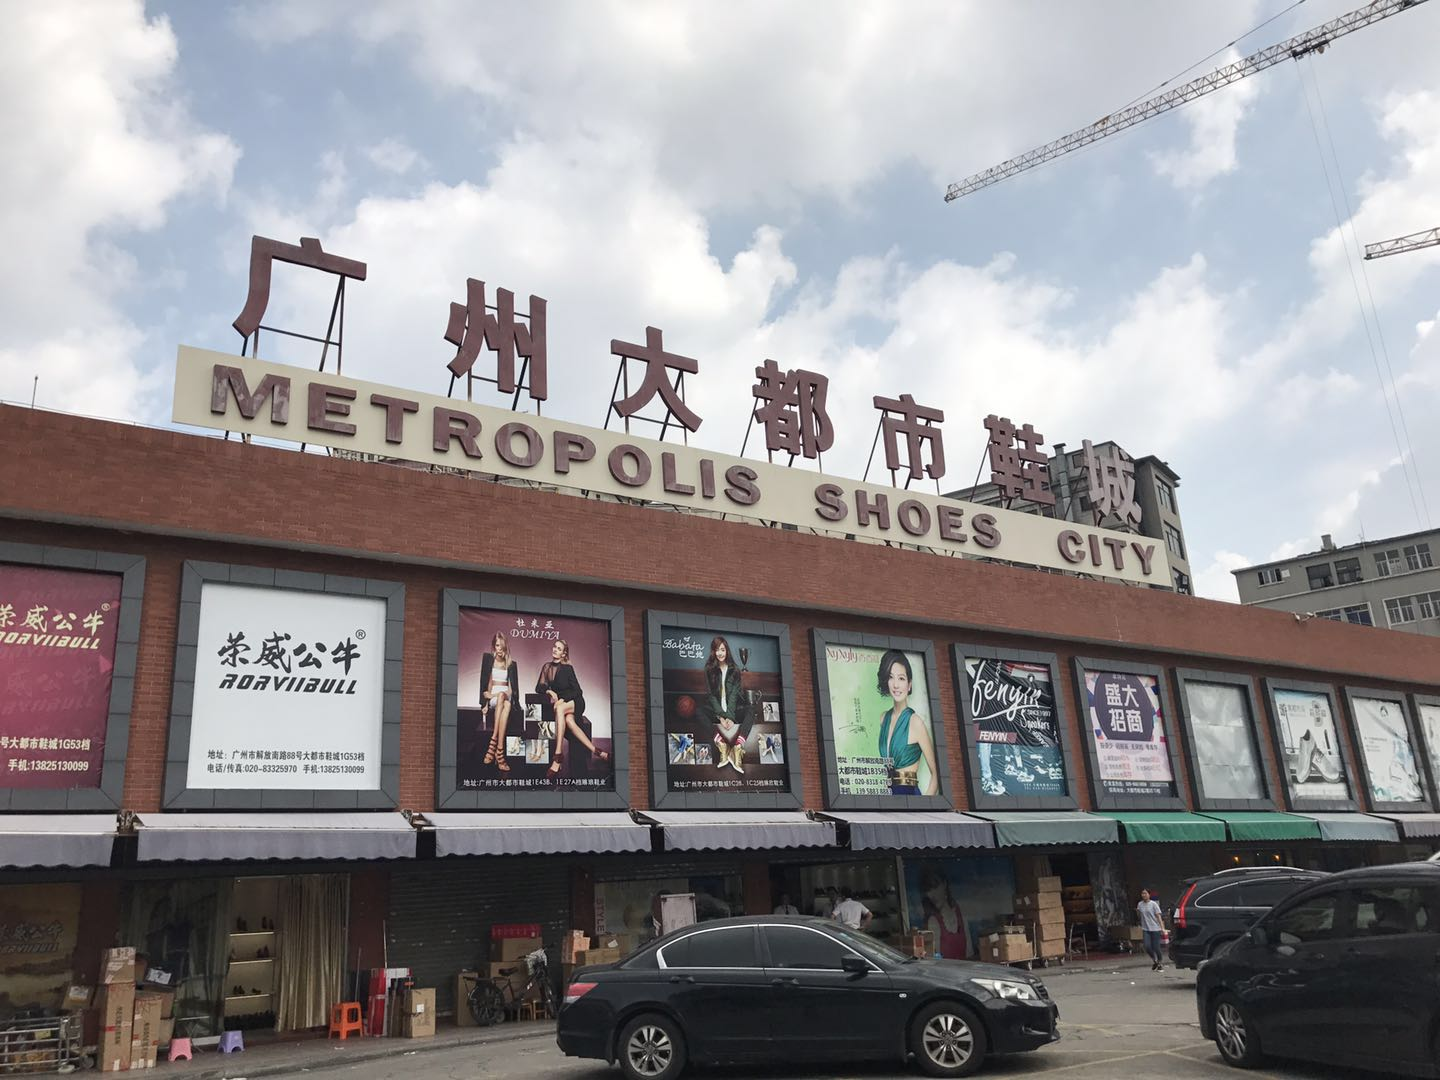 Guangzhou Metropolis Shoes City-1